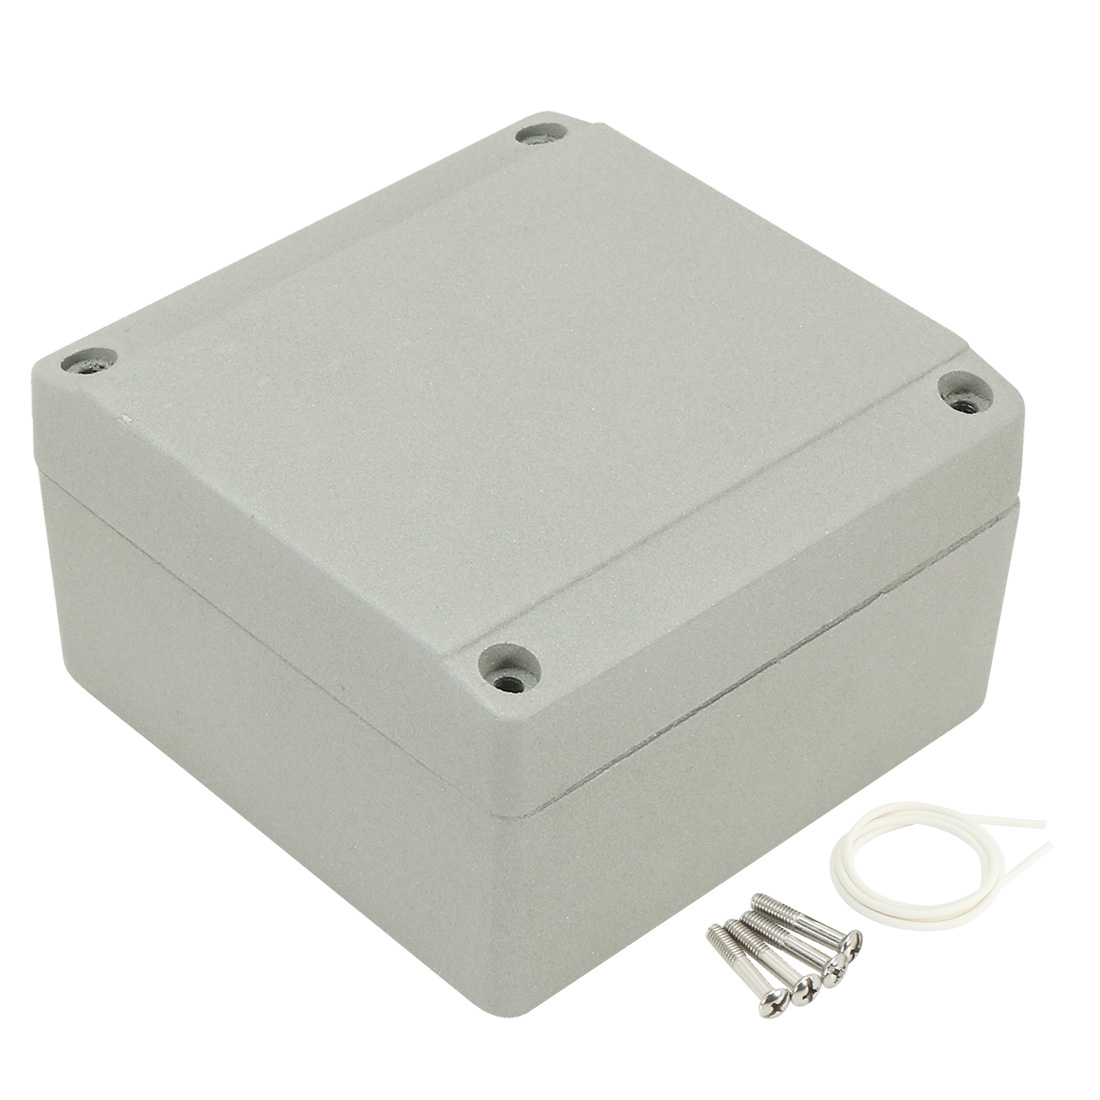 """3.9""""x3.9""""x2.3""""(100mmx100mmx60mm) Aluminum Junction Box Universal Electric Project Enclosure w Two Horns"""